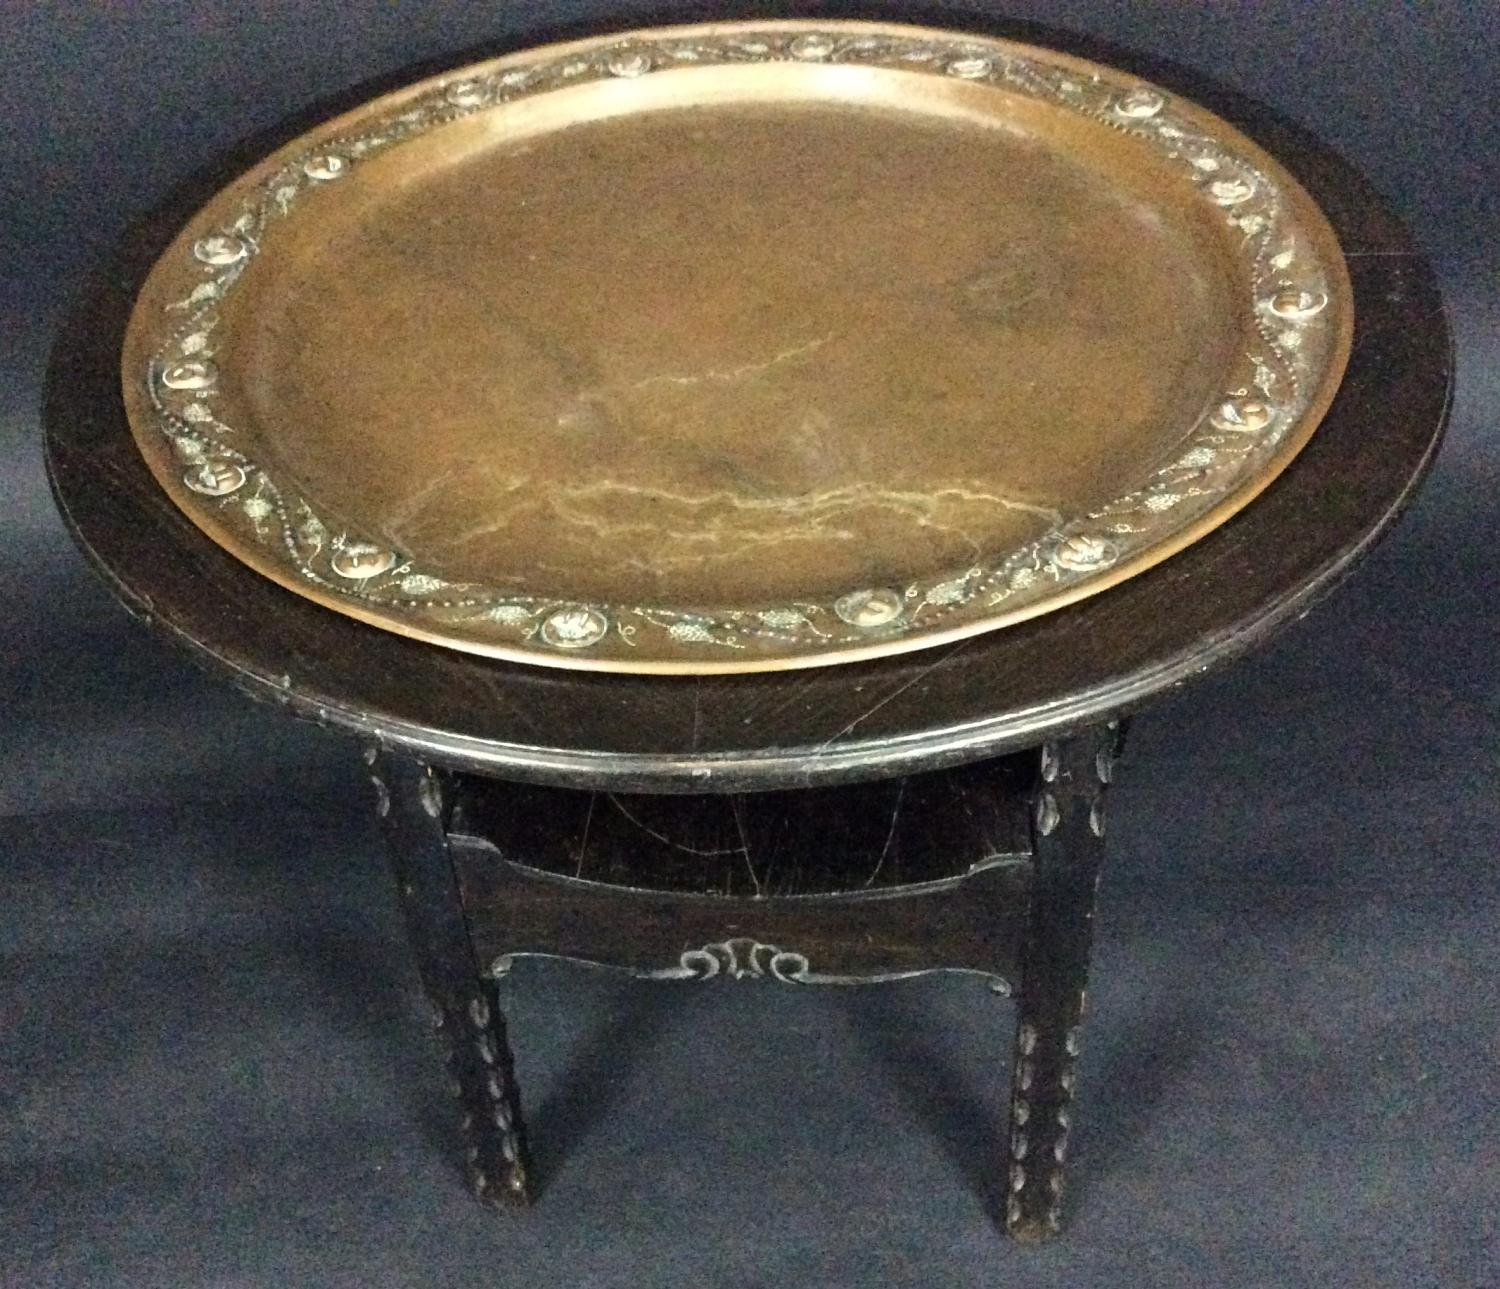 Decorative Arts and Crafts Table + Copper